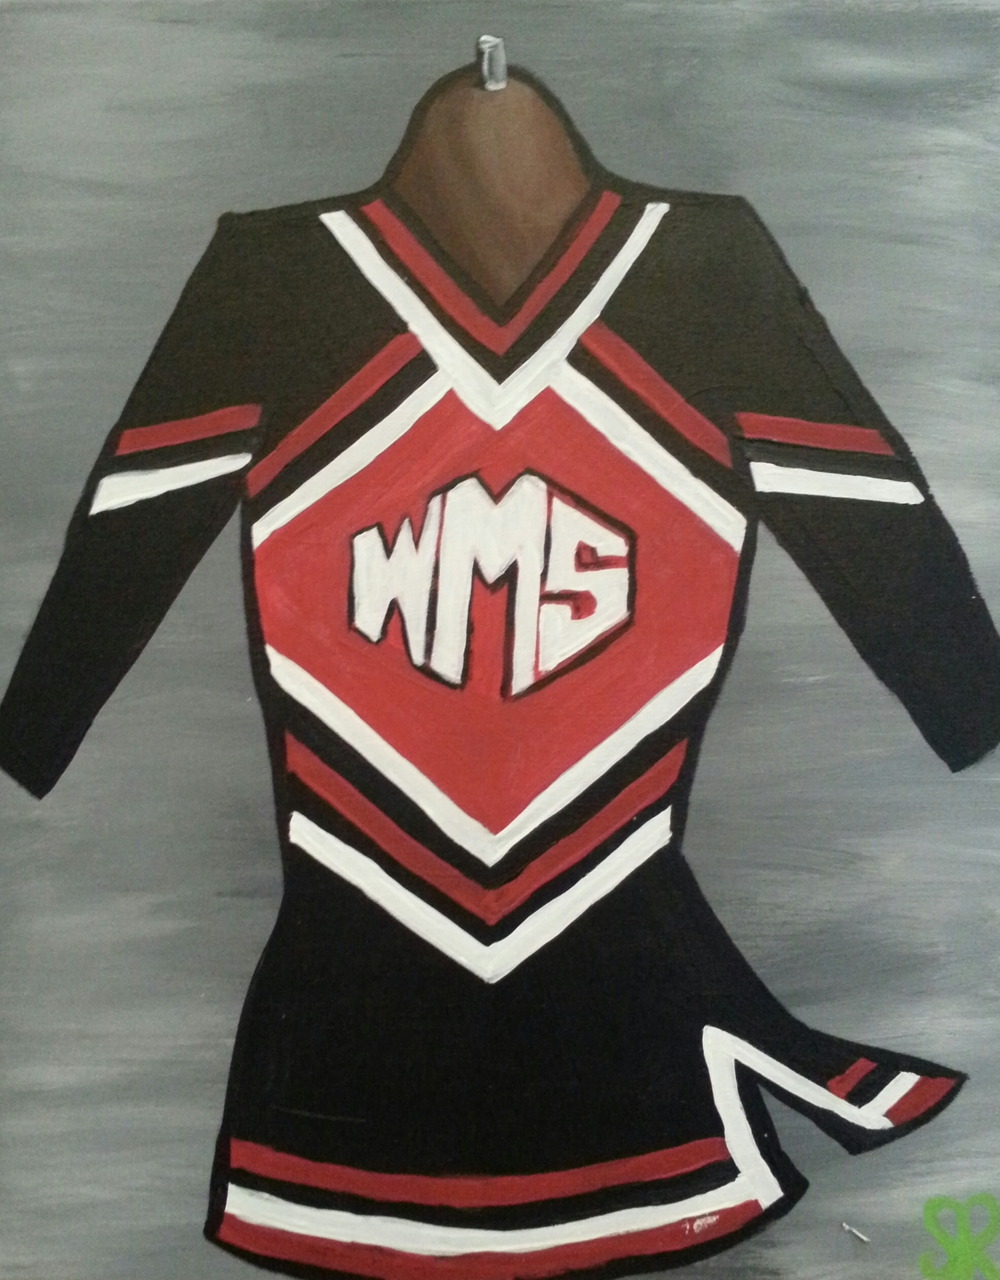 Cheer Uniform.jpg